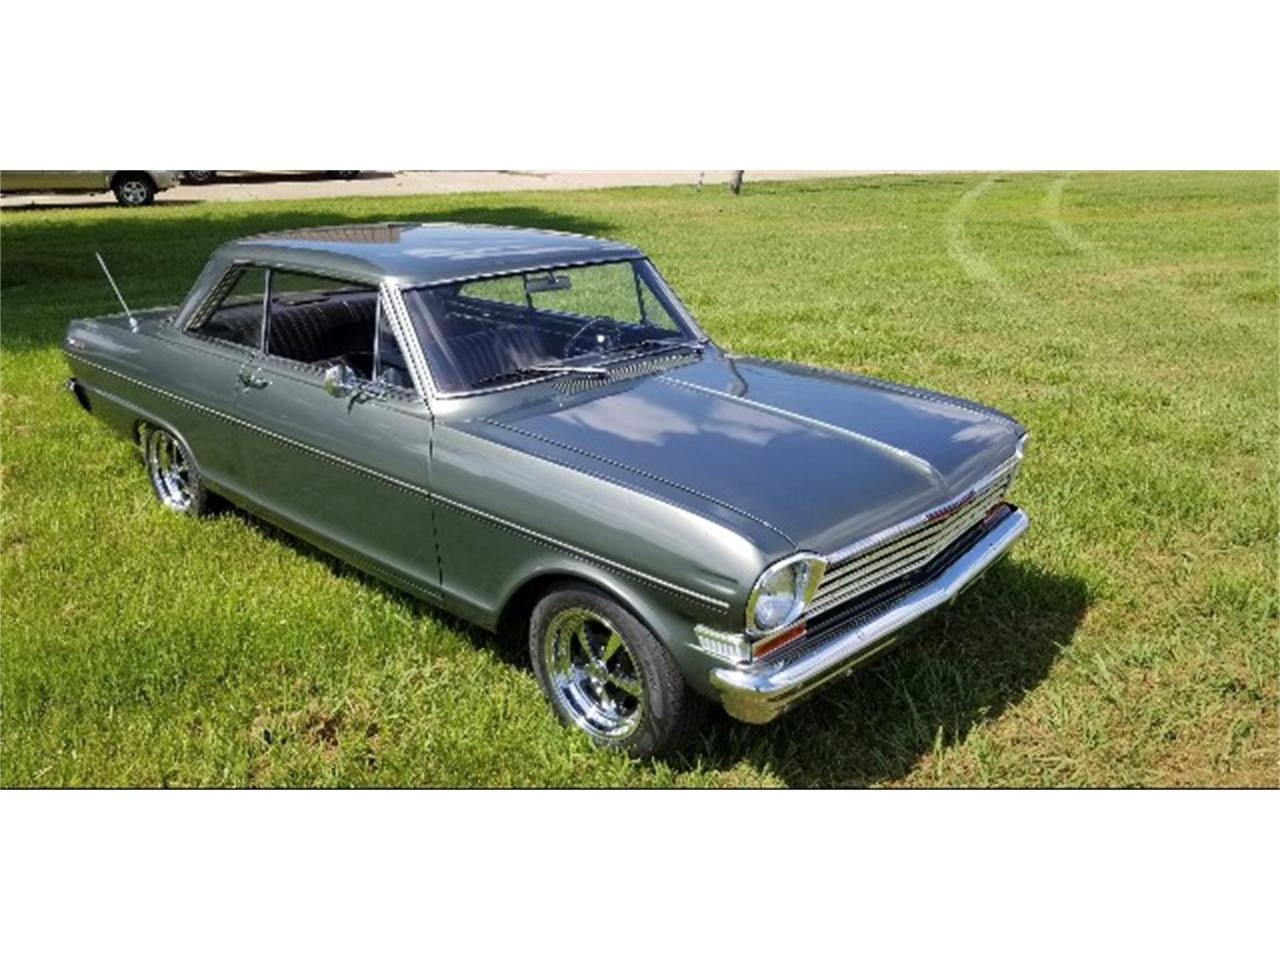 1963 Chevrolet Chevy II Nova SS for sale in Metairie, LA – photo 14